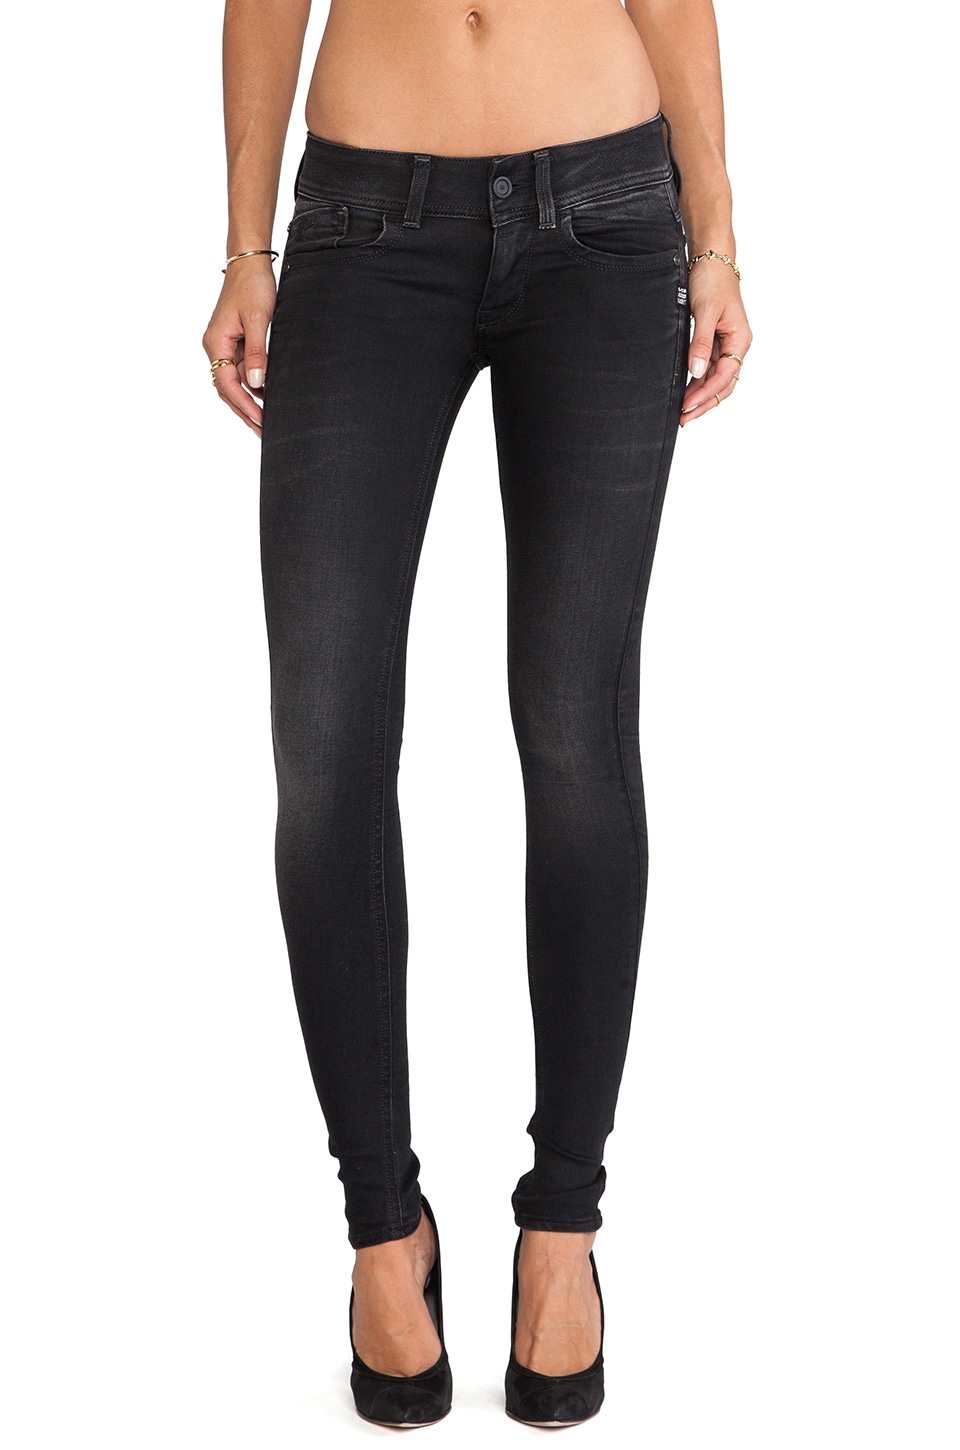 G-Star Lynn Skinny in Slander Black Super Stretch Dark Aged